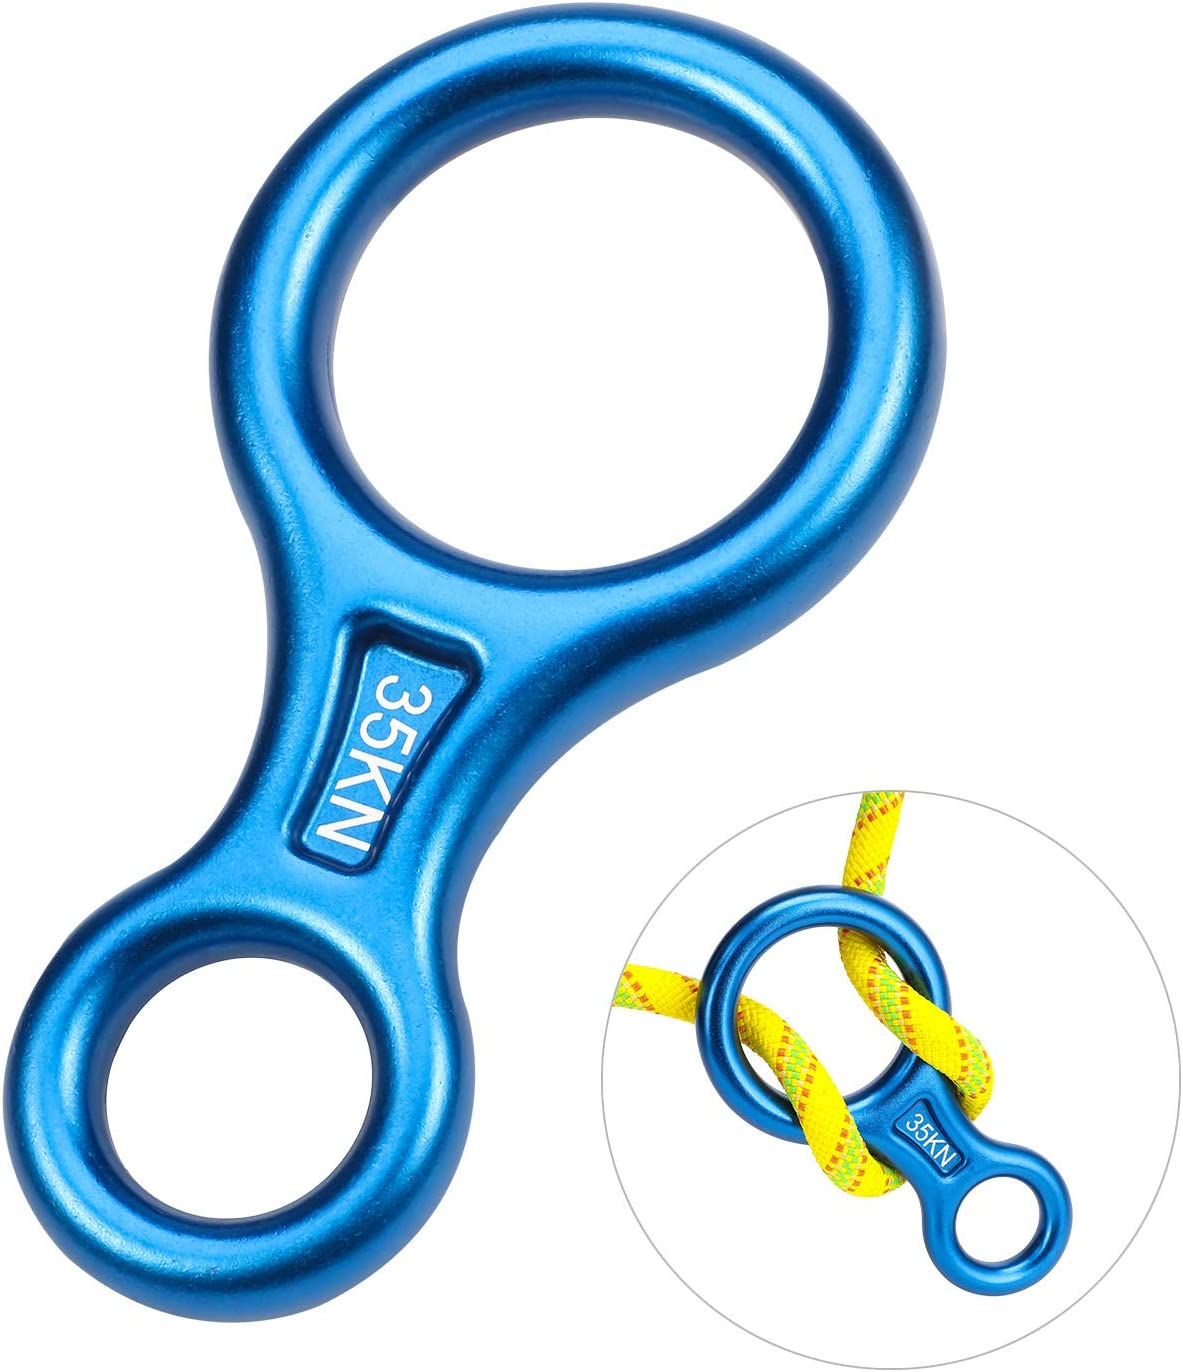 Oumers Rappel Gear Downhill Ring Equipment, Figure 8 Descender Rappel Rock Climbing Descending Belaying Equipment Rappel Device for Outdoor Recreation, Strong Safe Durable, Blue